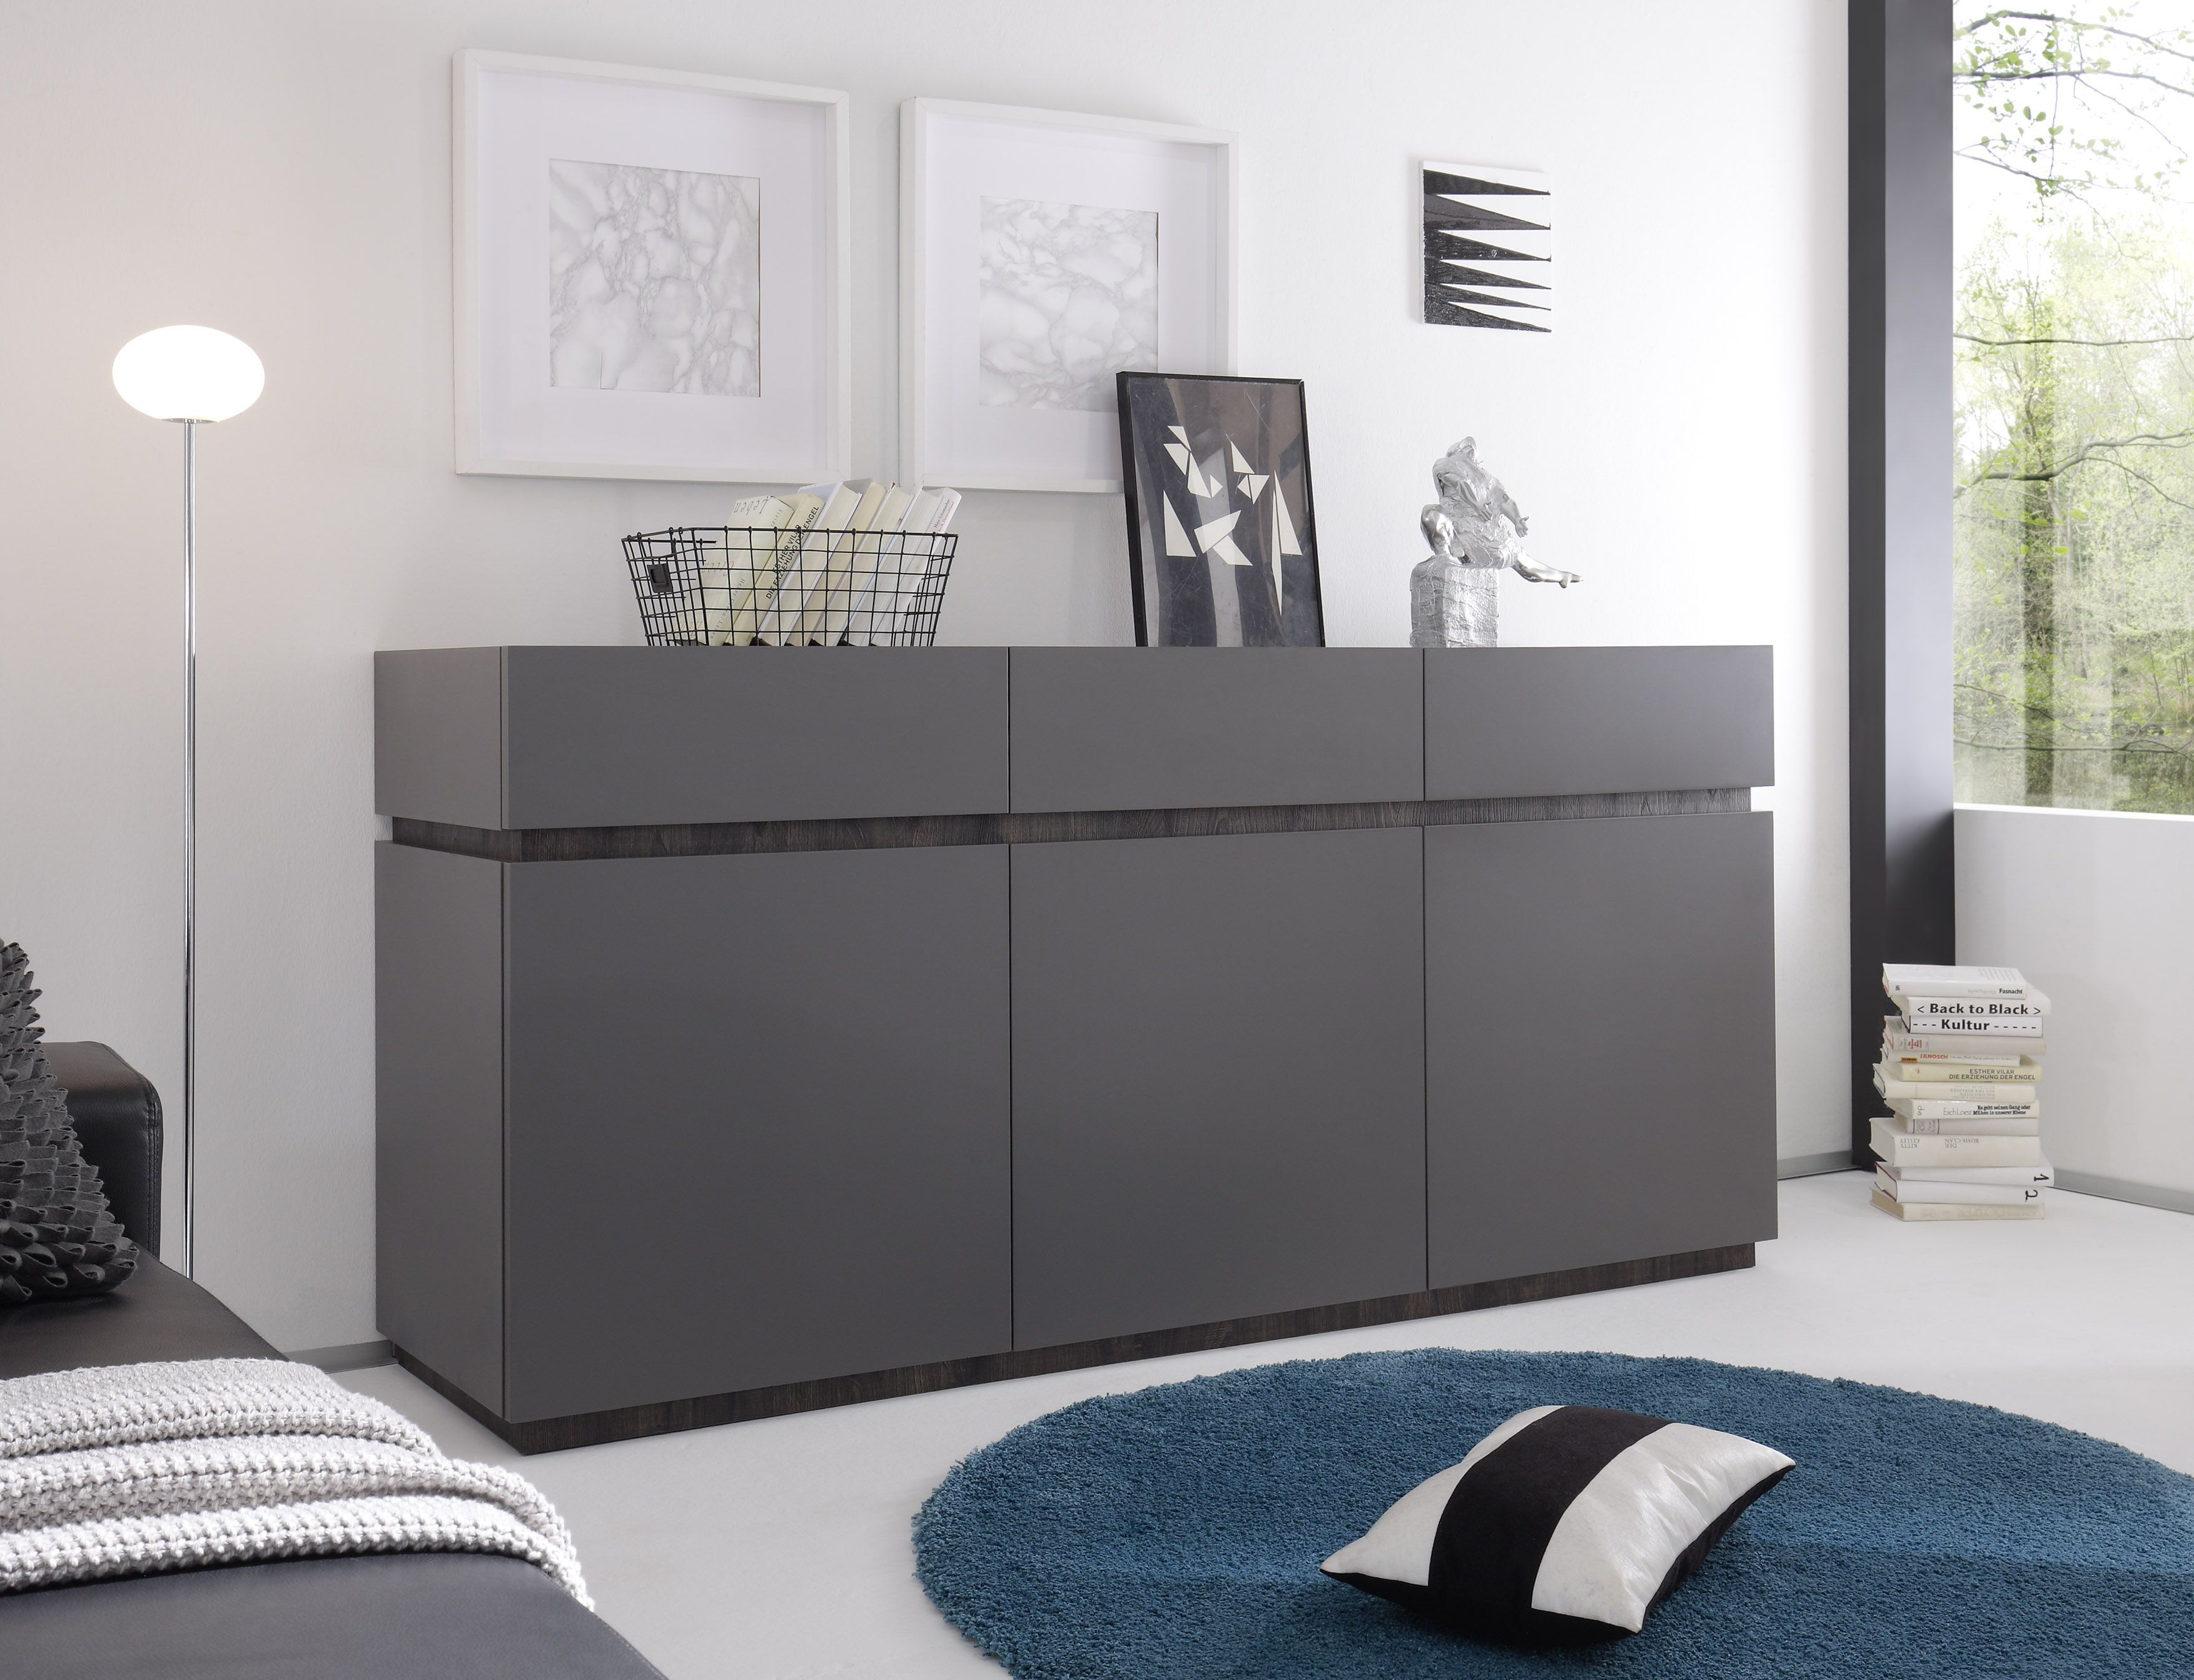 sideboard anthrazit wenge woody 12 01064 holz modern jetzt bestellen unter https moebel. Black Bedroom Furniture Sets. Home Design Ideas